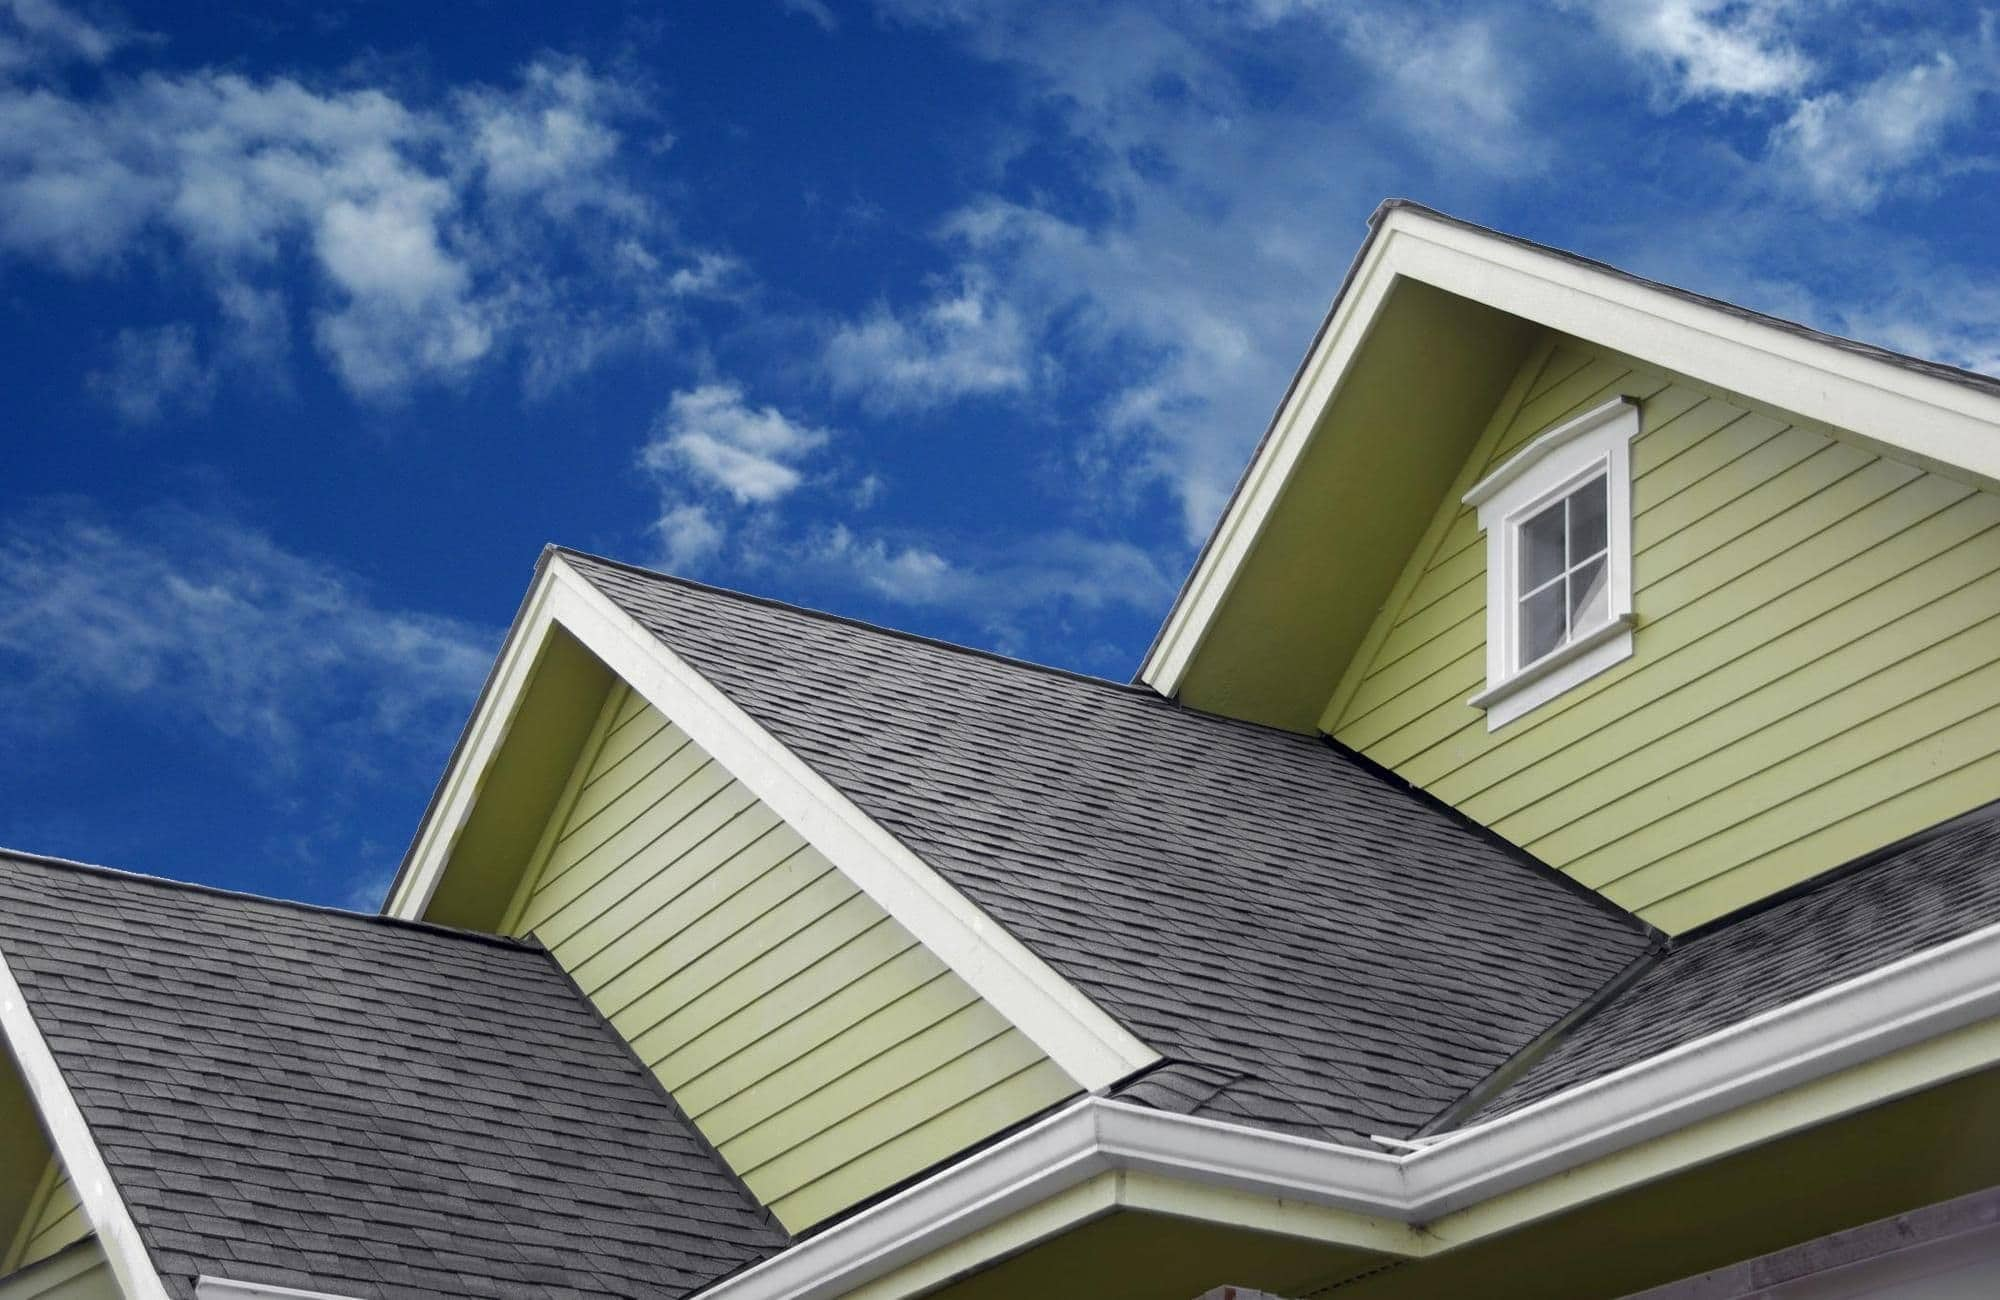 roof dream meaning, dream about roof, roof dream interpretation, seeing in a dream roof